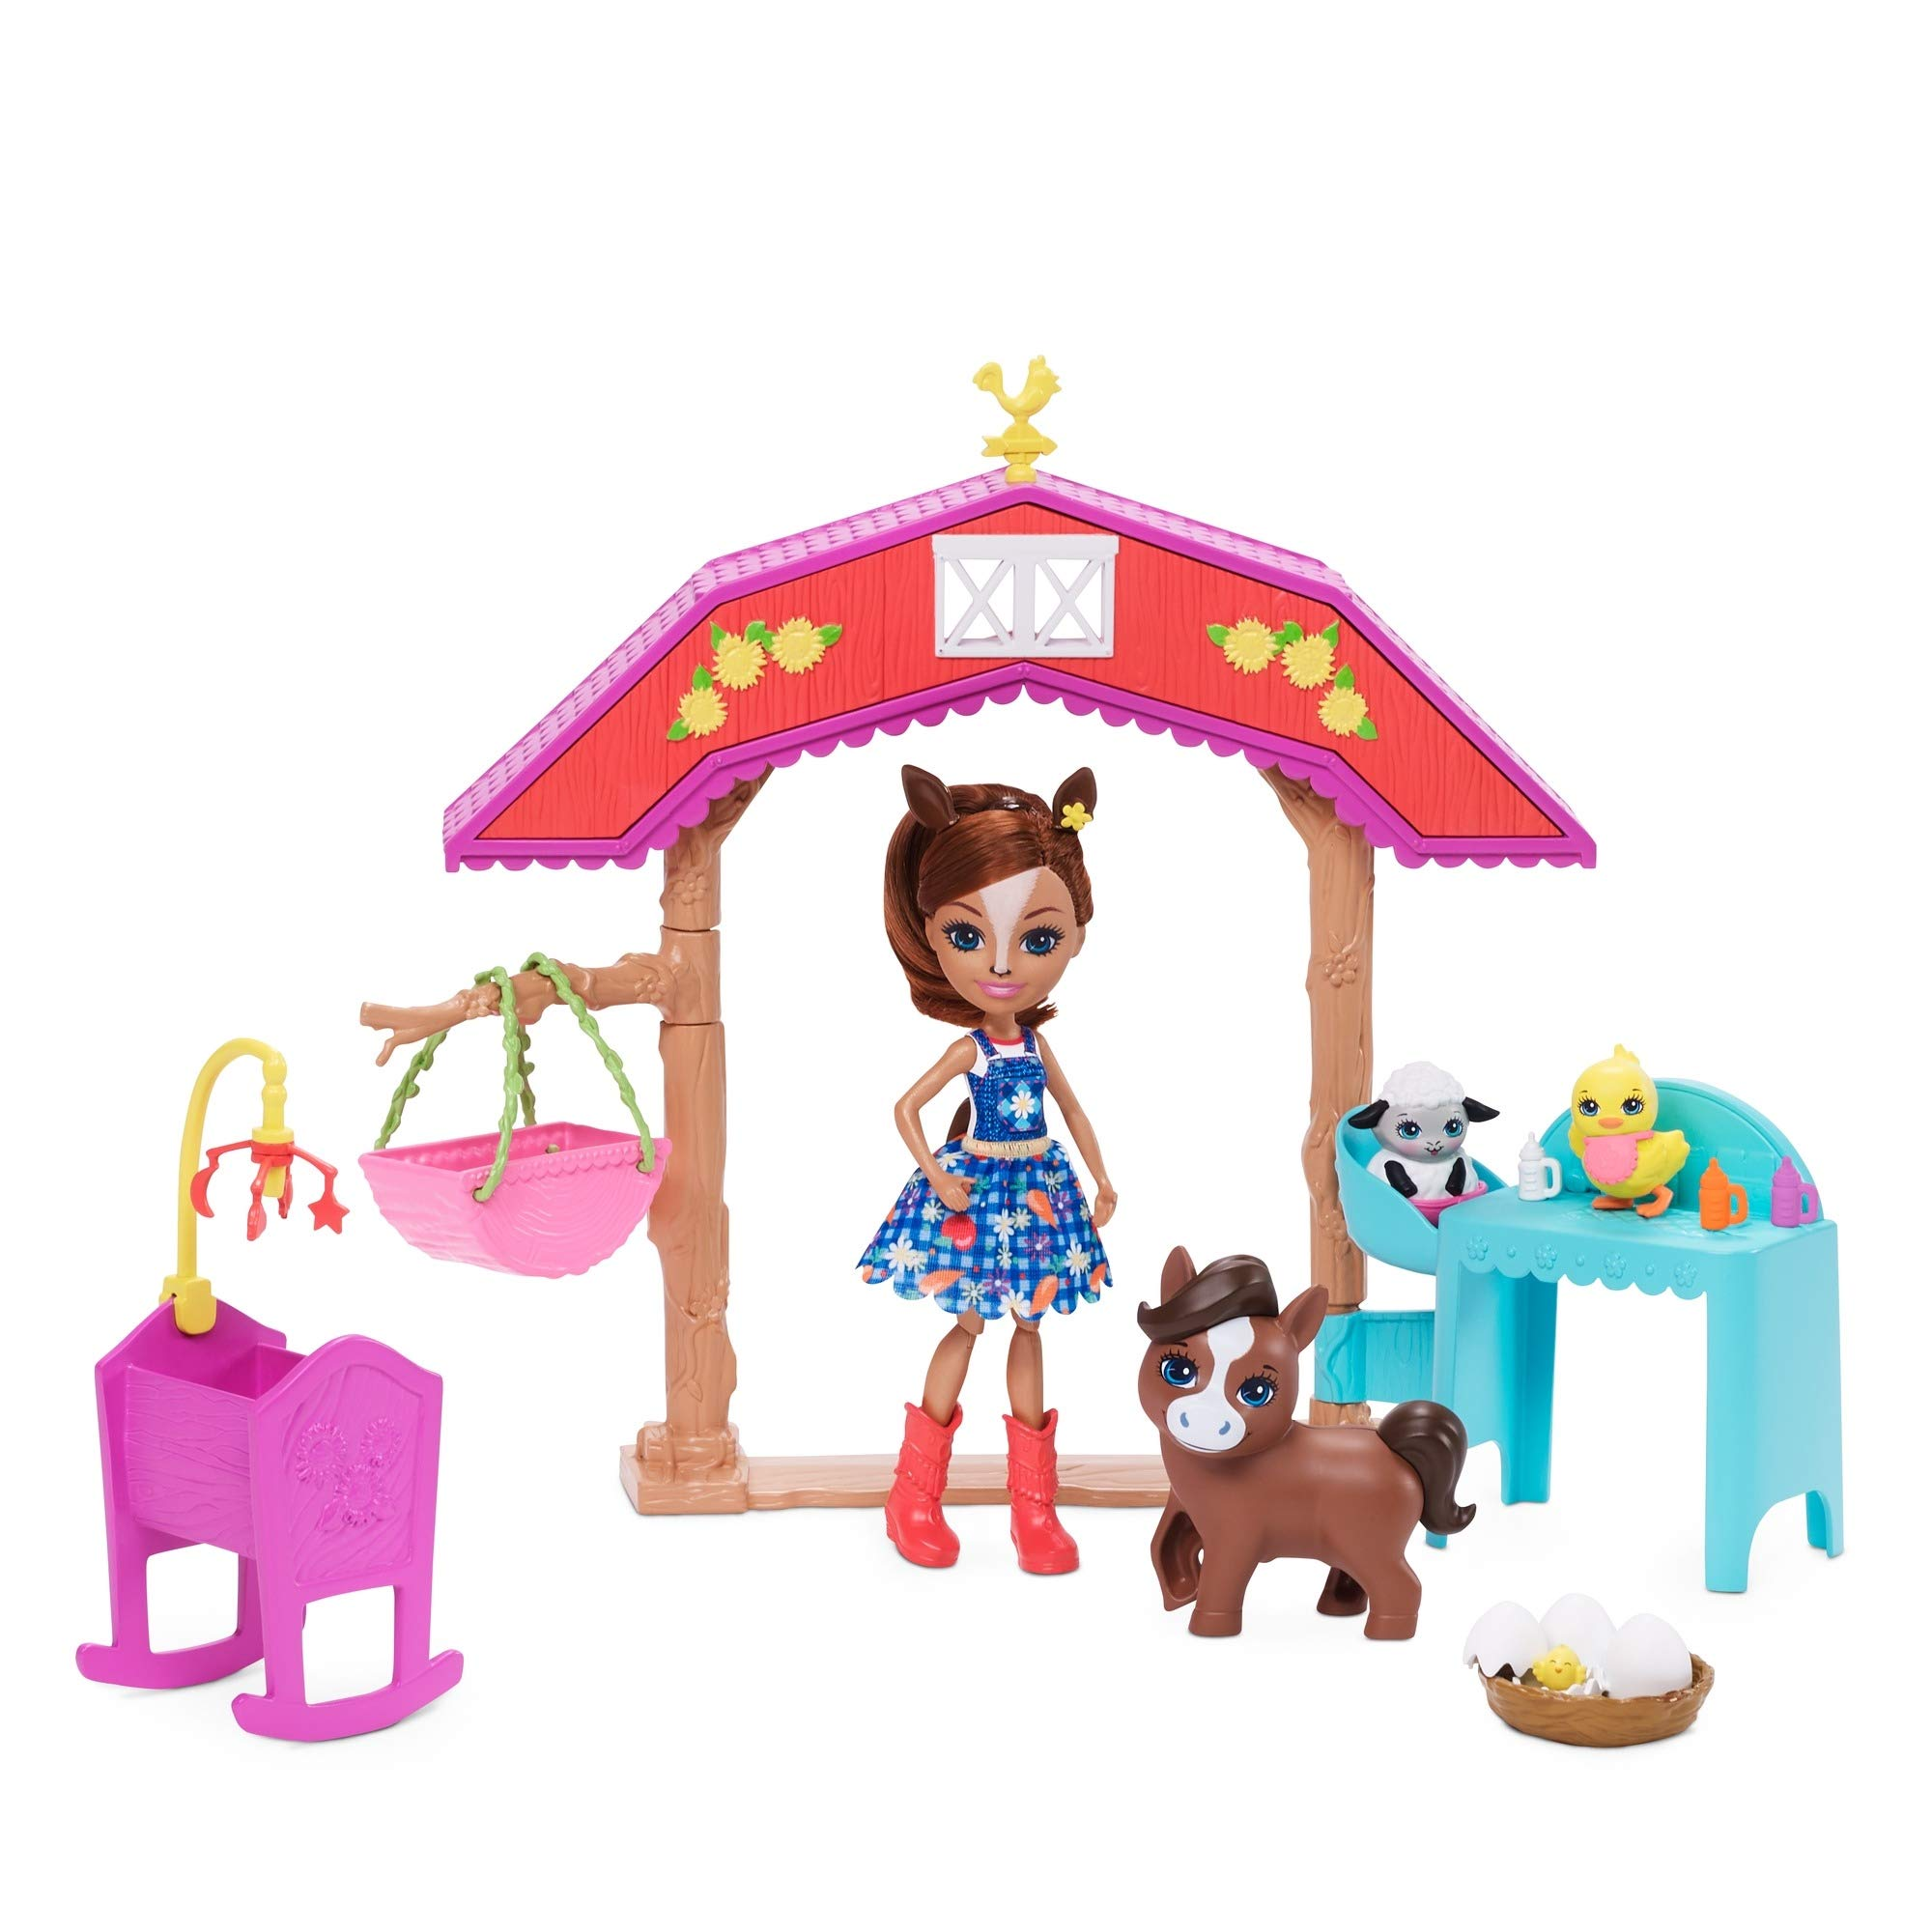 Enchantimals Barnyard Nursery Playset with Haydie Horse Doll (6-inch), Trotter Horse, 3 Additional Animal Figures, and 10+ Accessories [Amazon Exclusive]